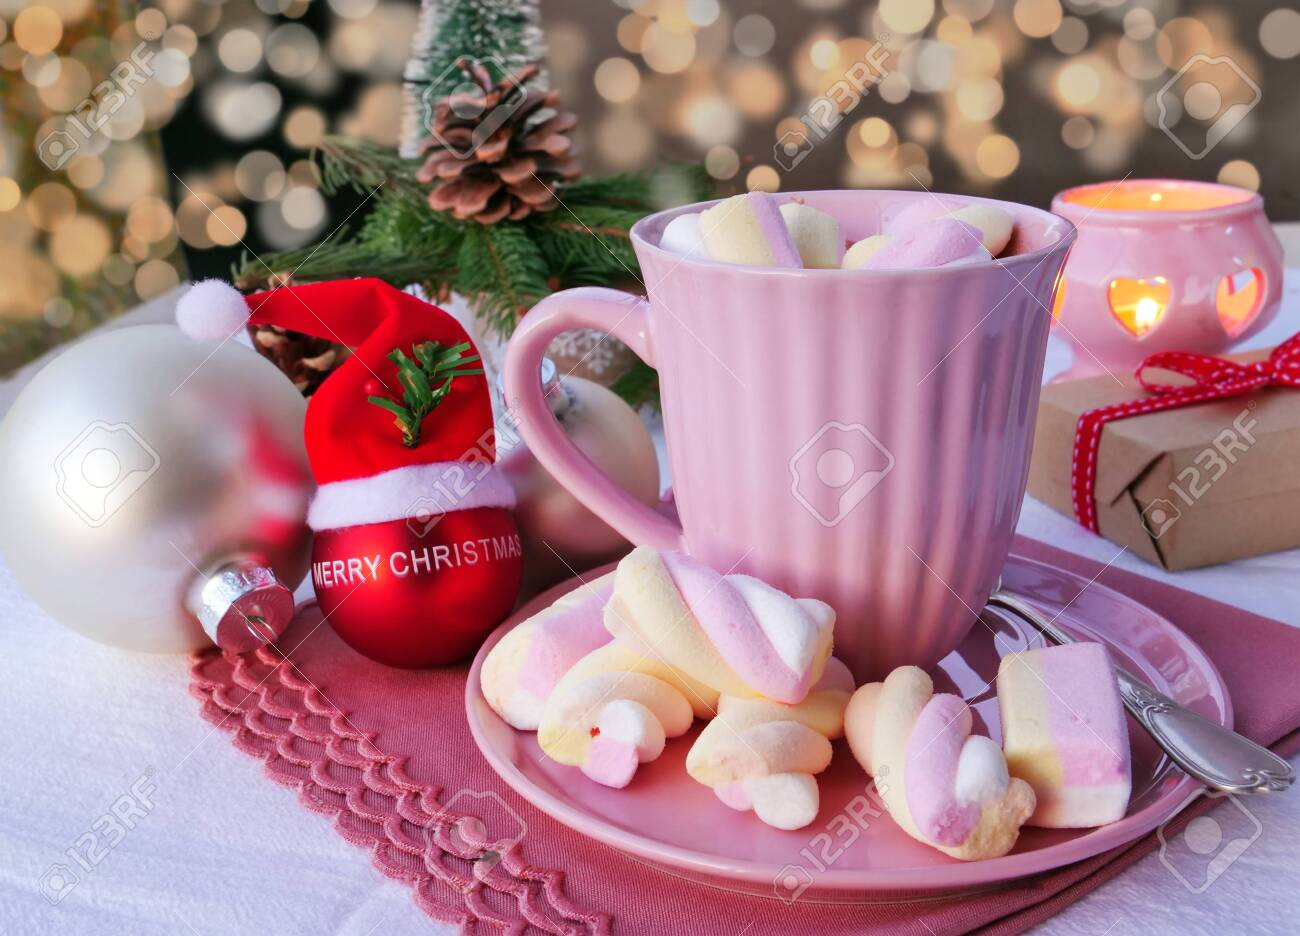 Hot Chocolate With Marshmallows In Pink Mug On Christmas Table Stock Photo Picture And Royalty Free Image Image 134030818